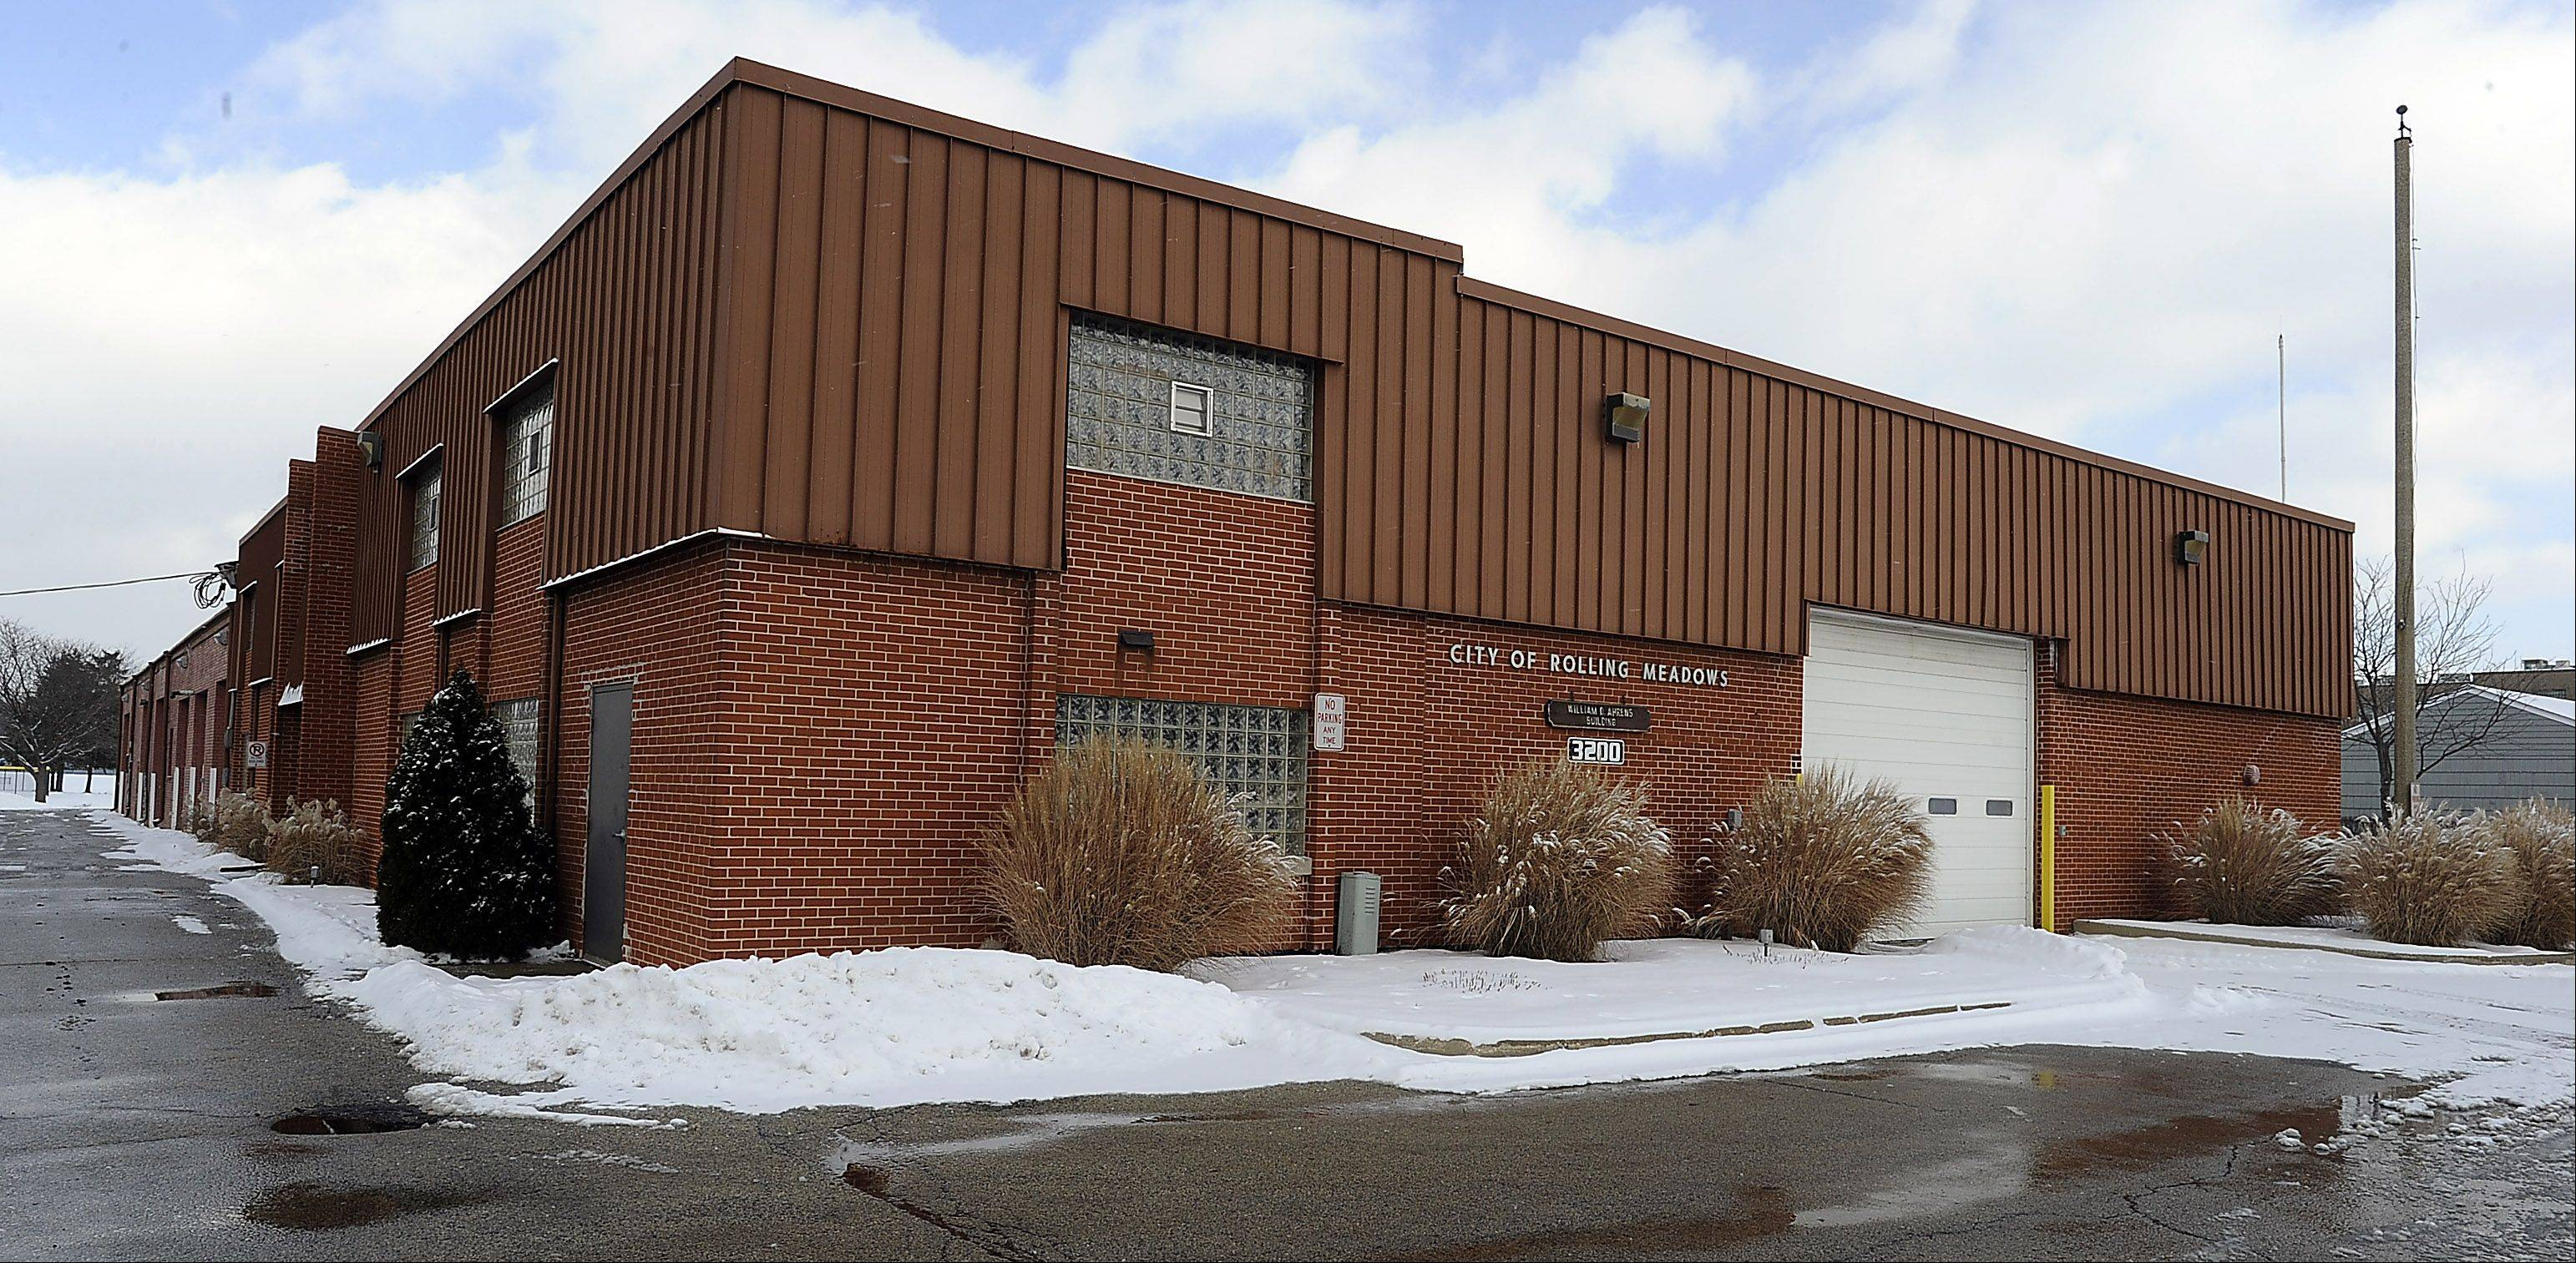 Rolling Meadows officials took a pass this week on deciding the long-term fate of the city's former public works building on Central Road. Officials could renovate the building at a cost of as much as $2.7 million or tear it down and build a new one, which could cost anywhere between $3.4 and $7.4 million.